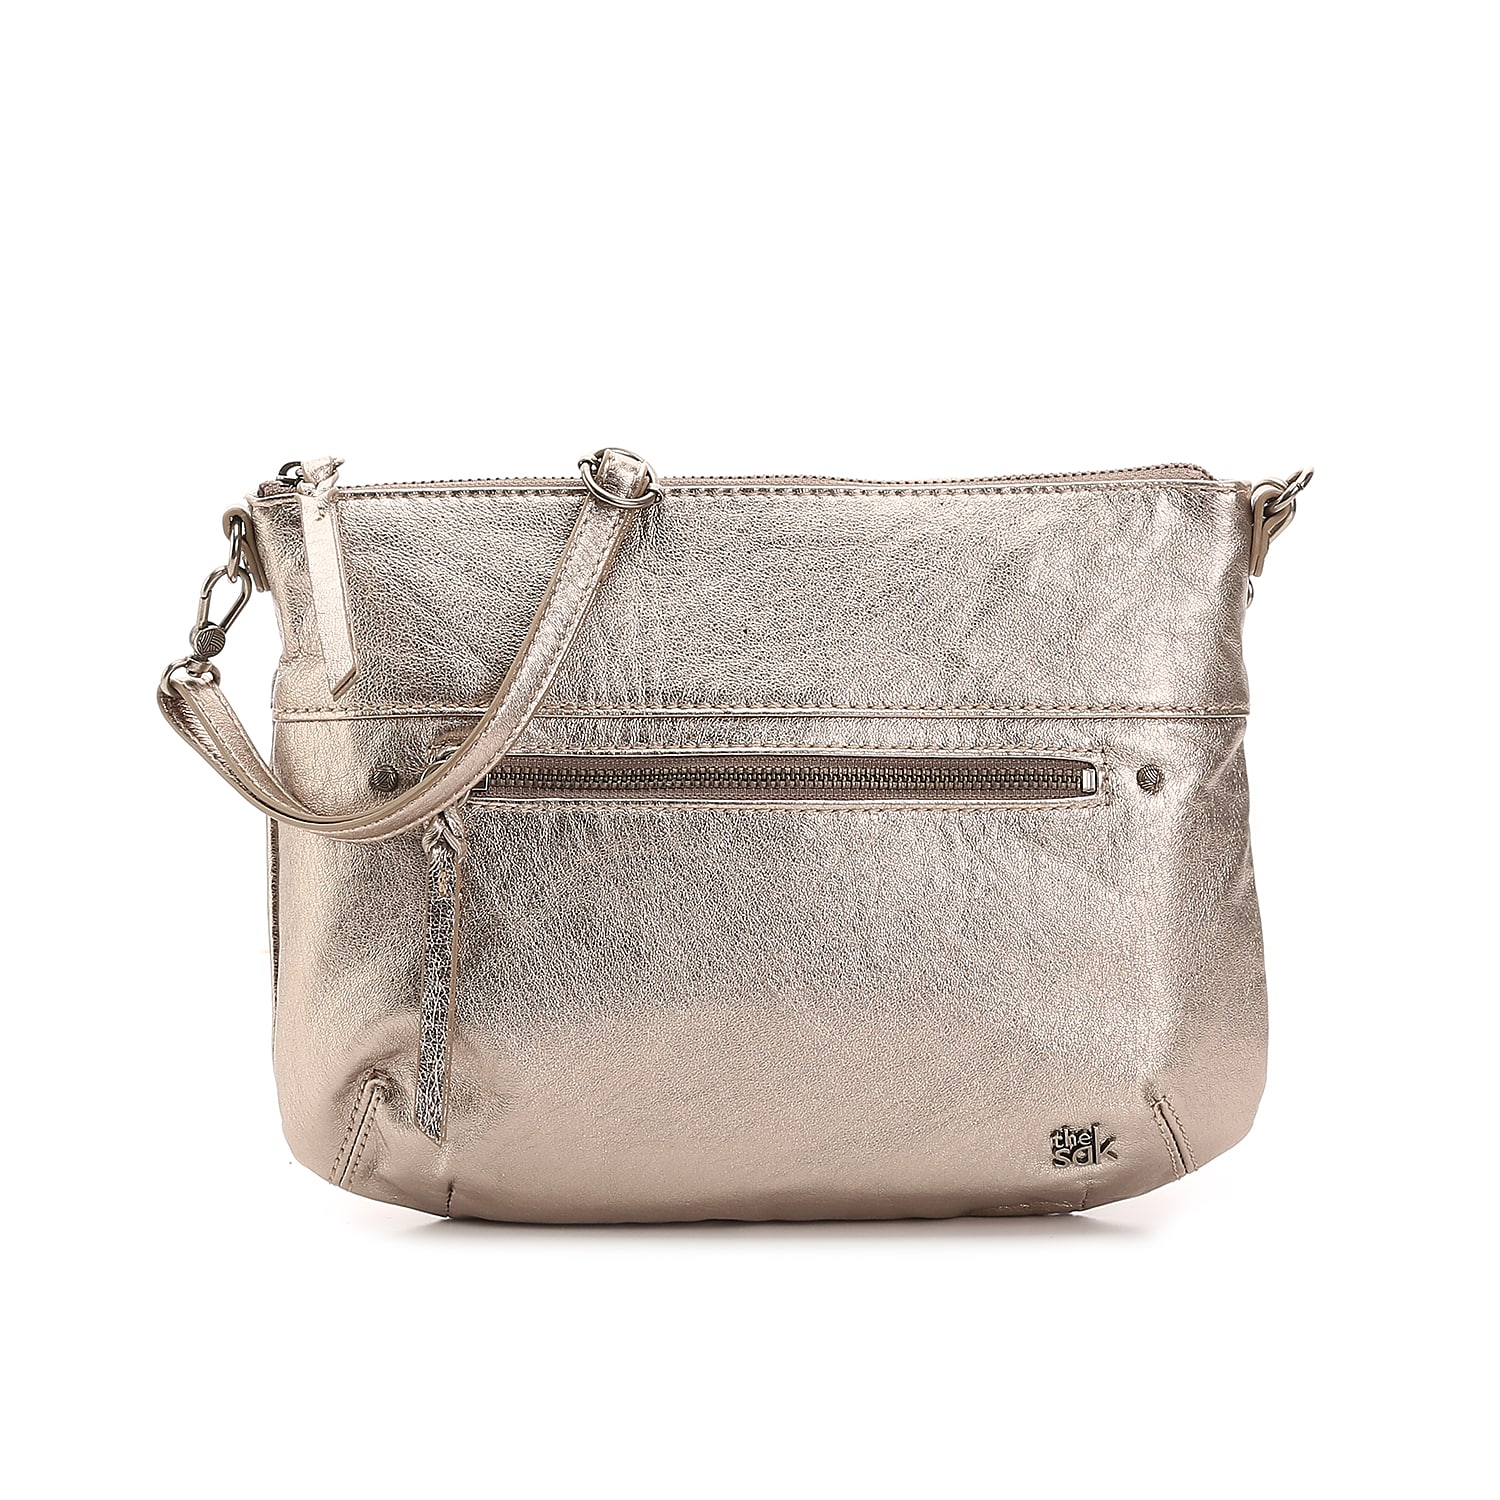 Simple yet cute, the Oleta crossbody bag from The Sak has a removable strap so this handbag can also be used as a clutch!